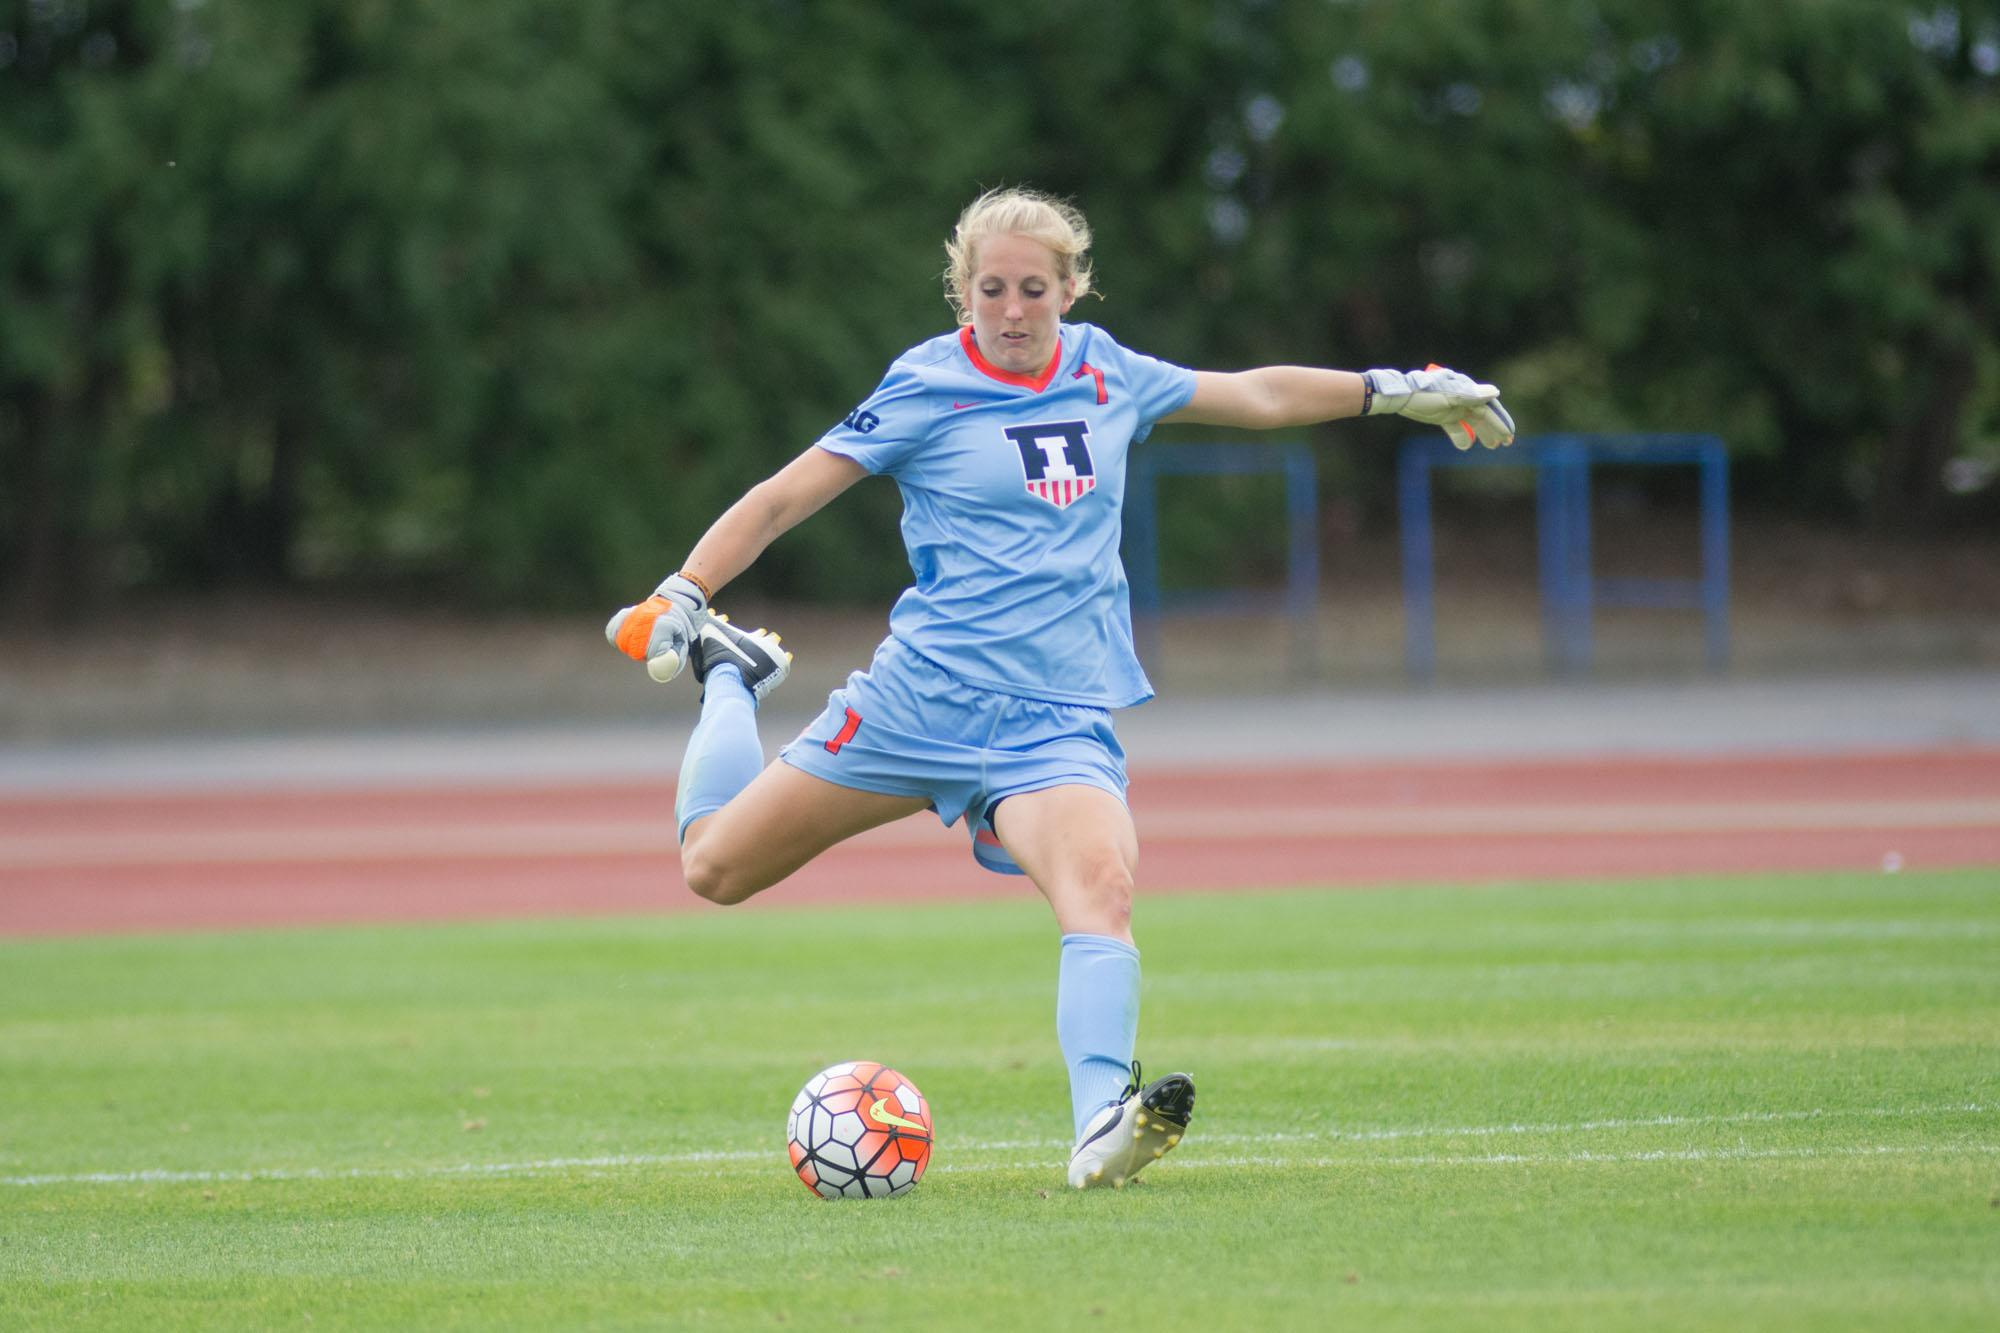 Claire Wheatley (1) sends the ball forward during Illinois' game vs Maryland on Sunday, Sept 27, 2015. Illinois won 2-1.